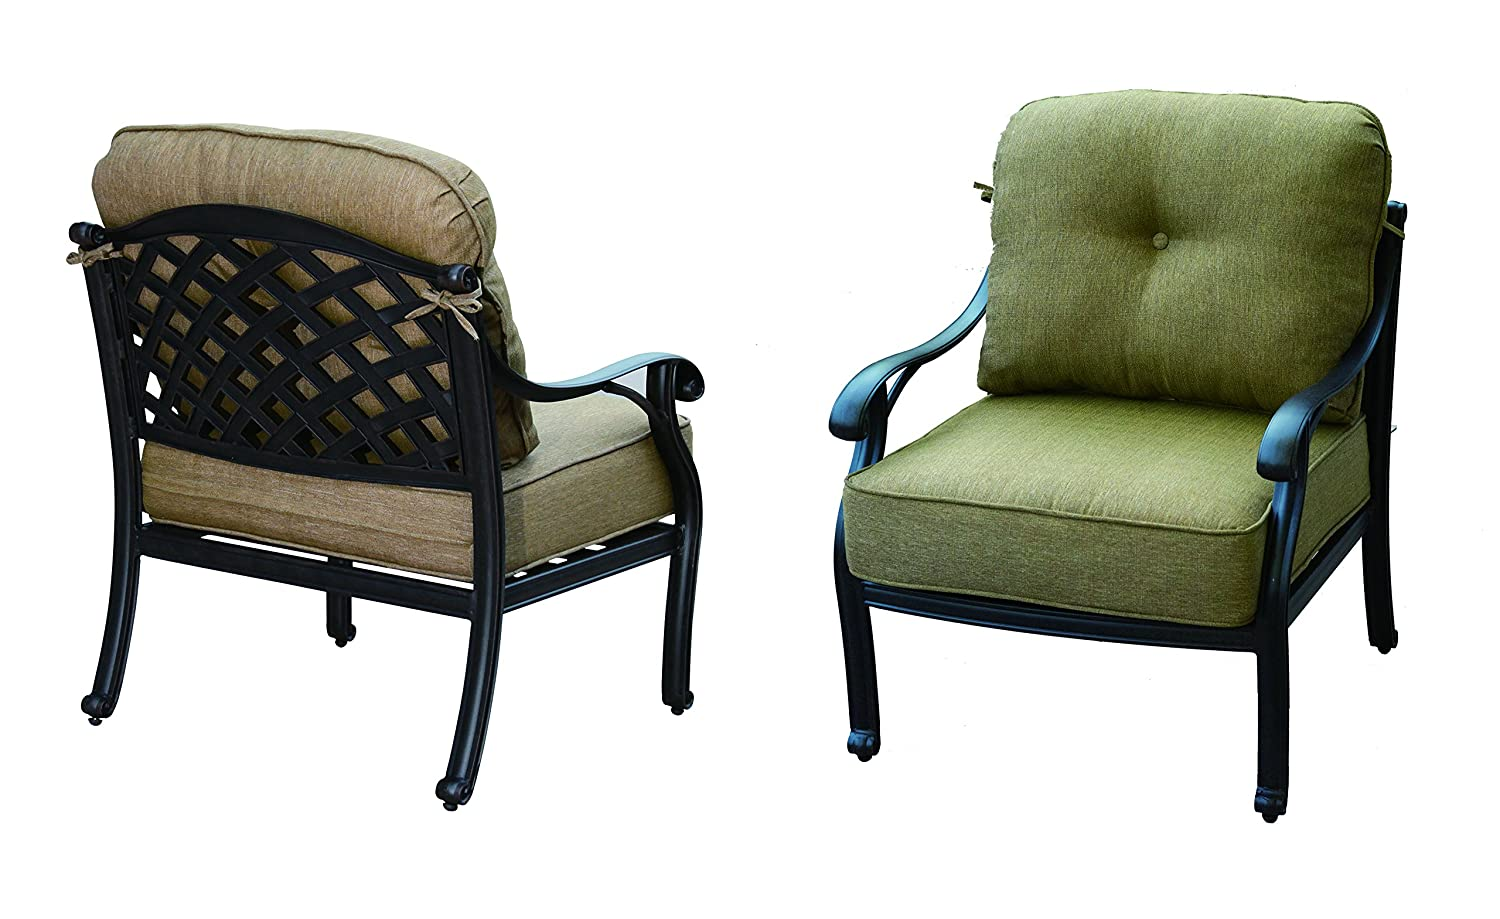 Darlee Nassau Cast Aluminum Club Chair with Seat and Back Cushion, Set of 2, Antique Bronze Finish